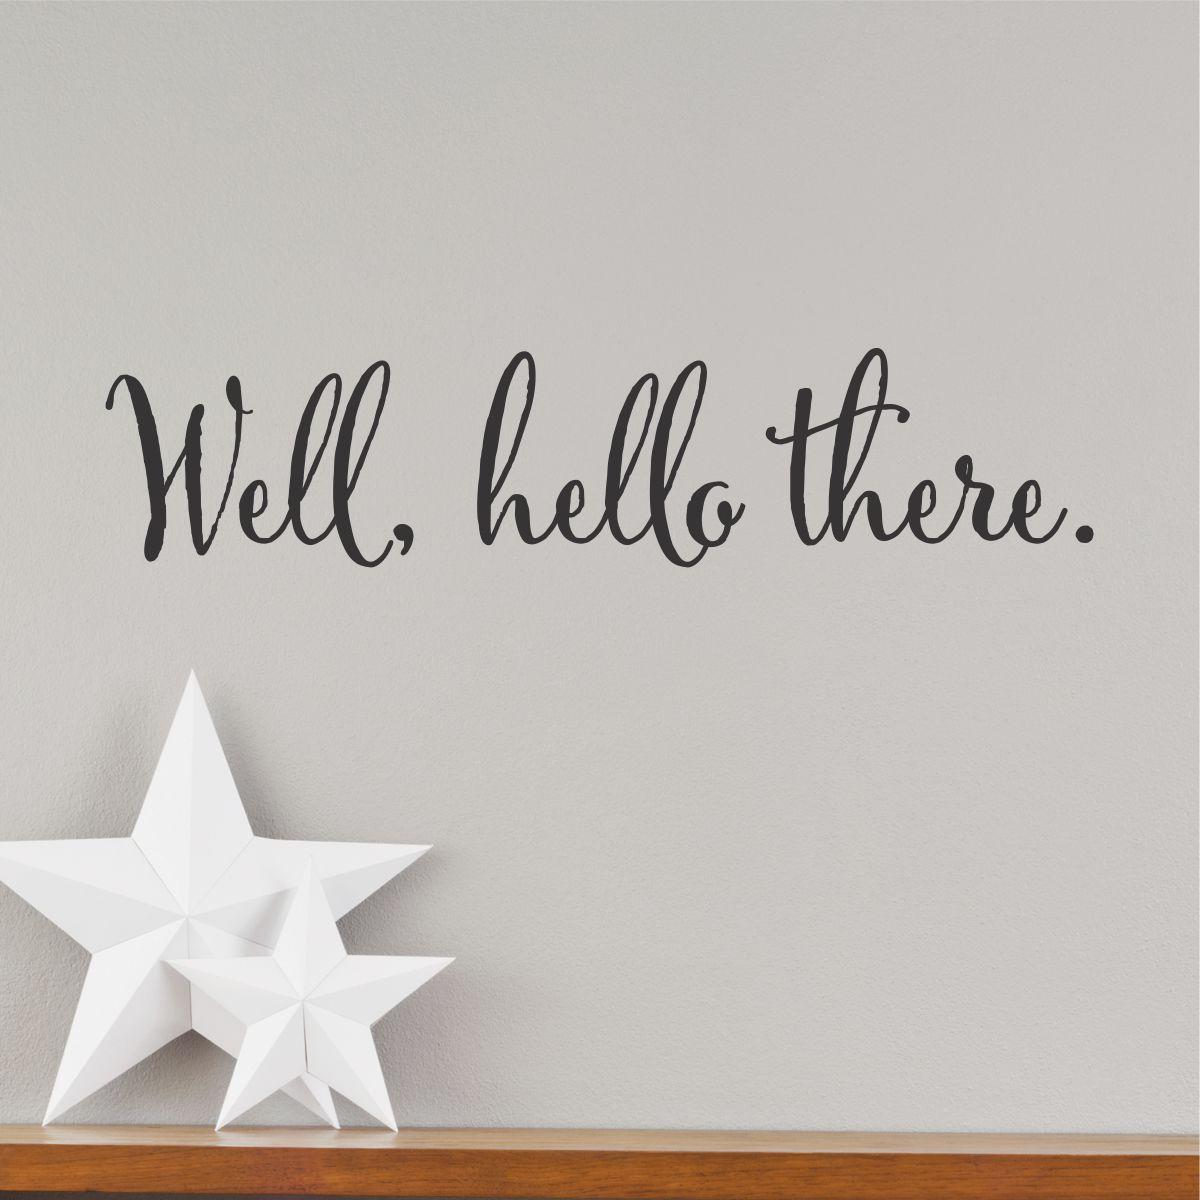 Well Hello There Wall Quotes Decal  WallQuotescom